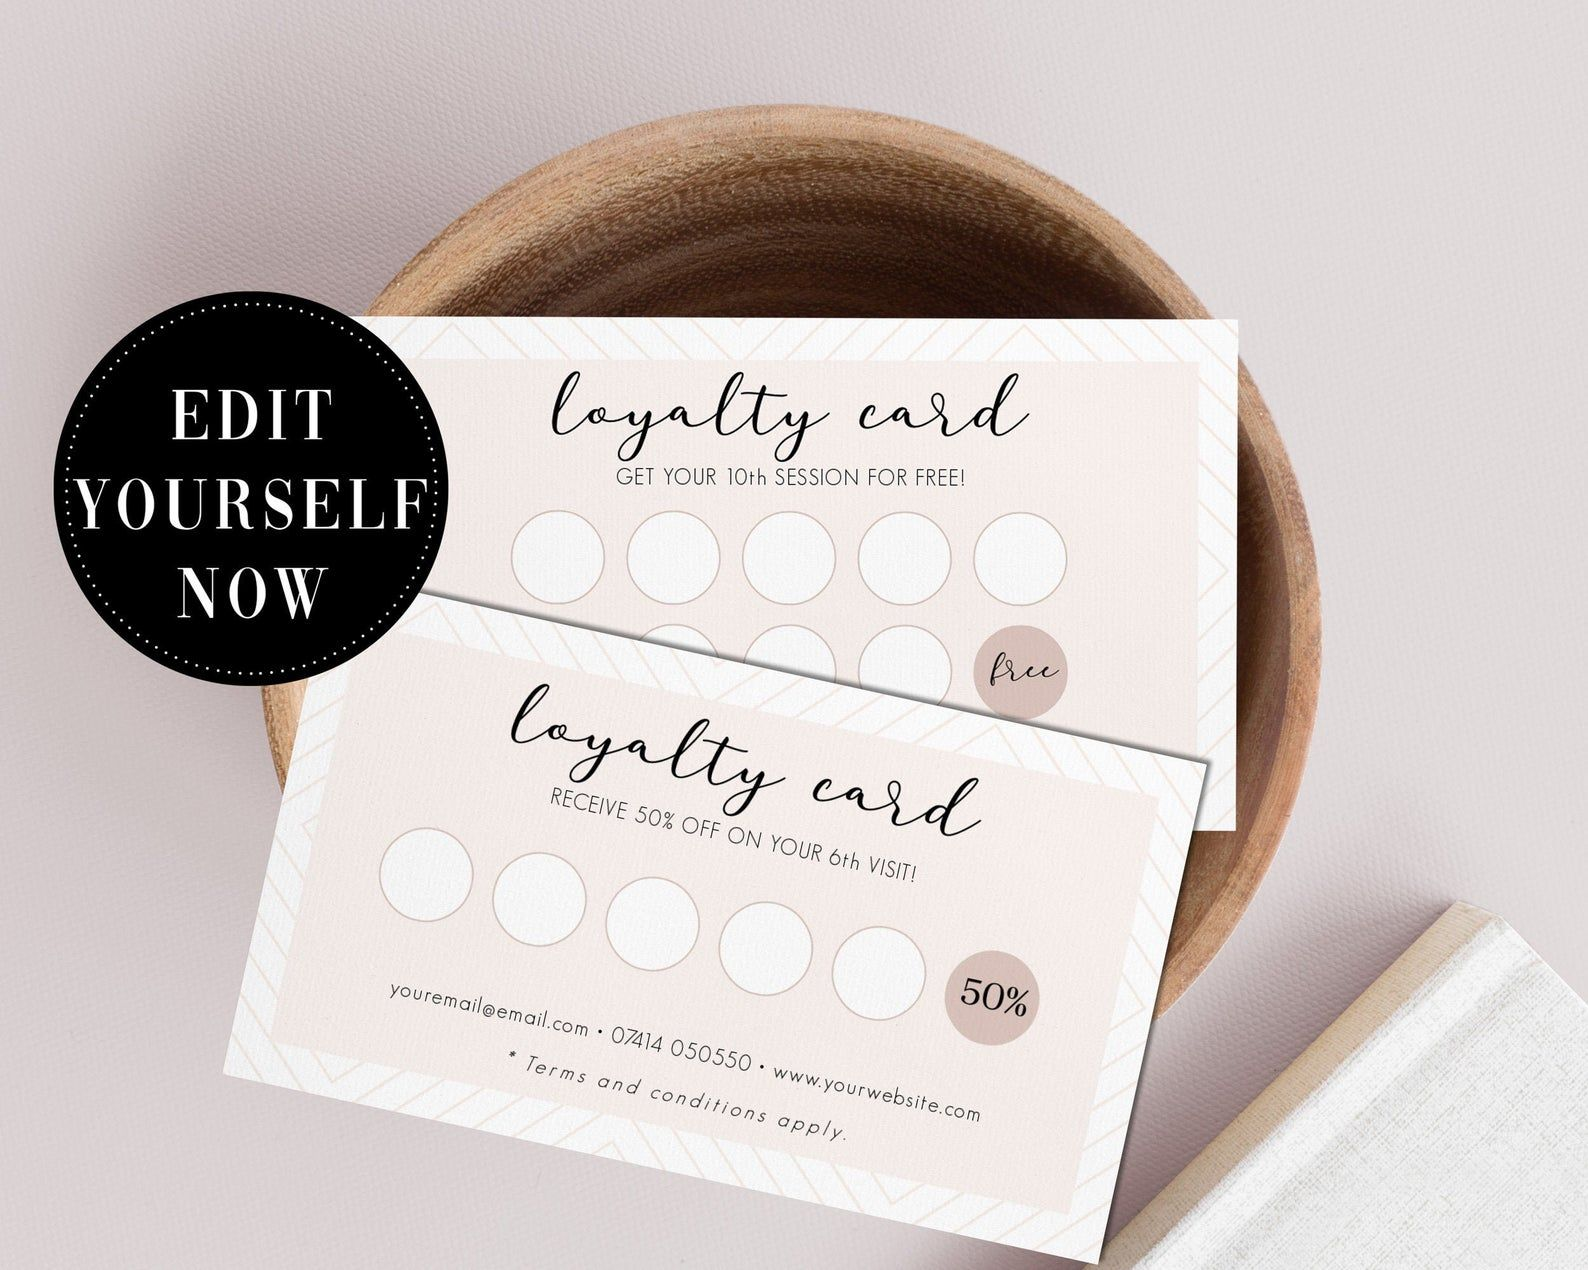 Customer Loyalty Card Template Stamp Card Editable Card Etsy Shablony Vizitok Vizitki Vizazhistov Shablony